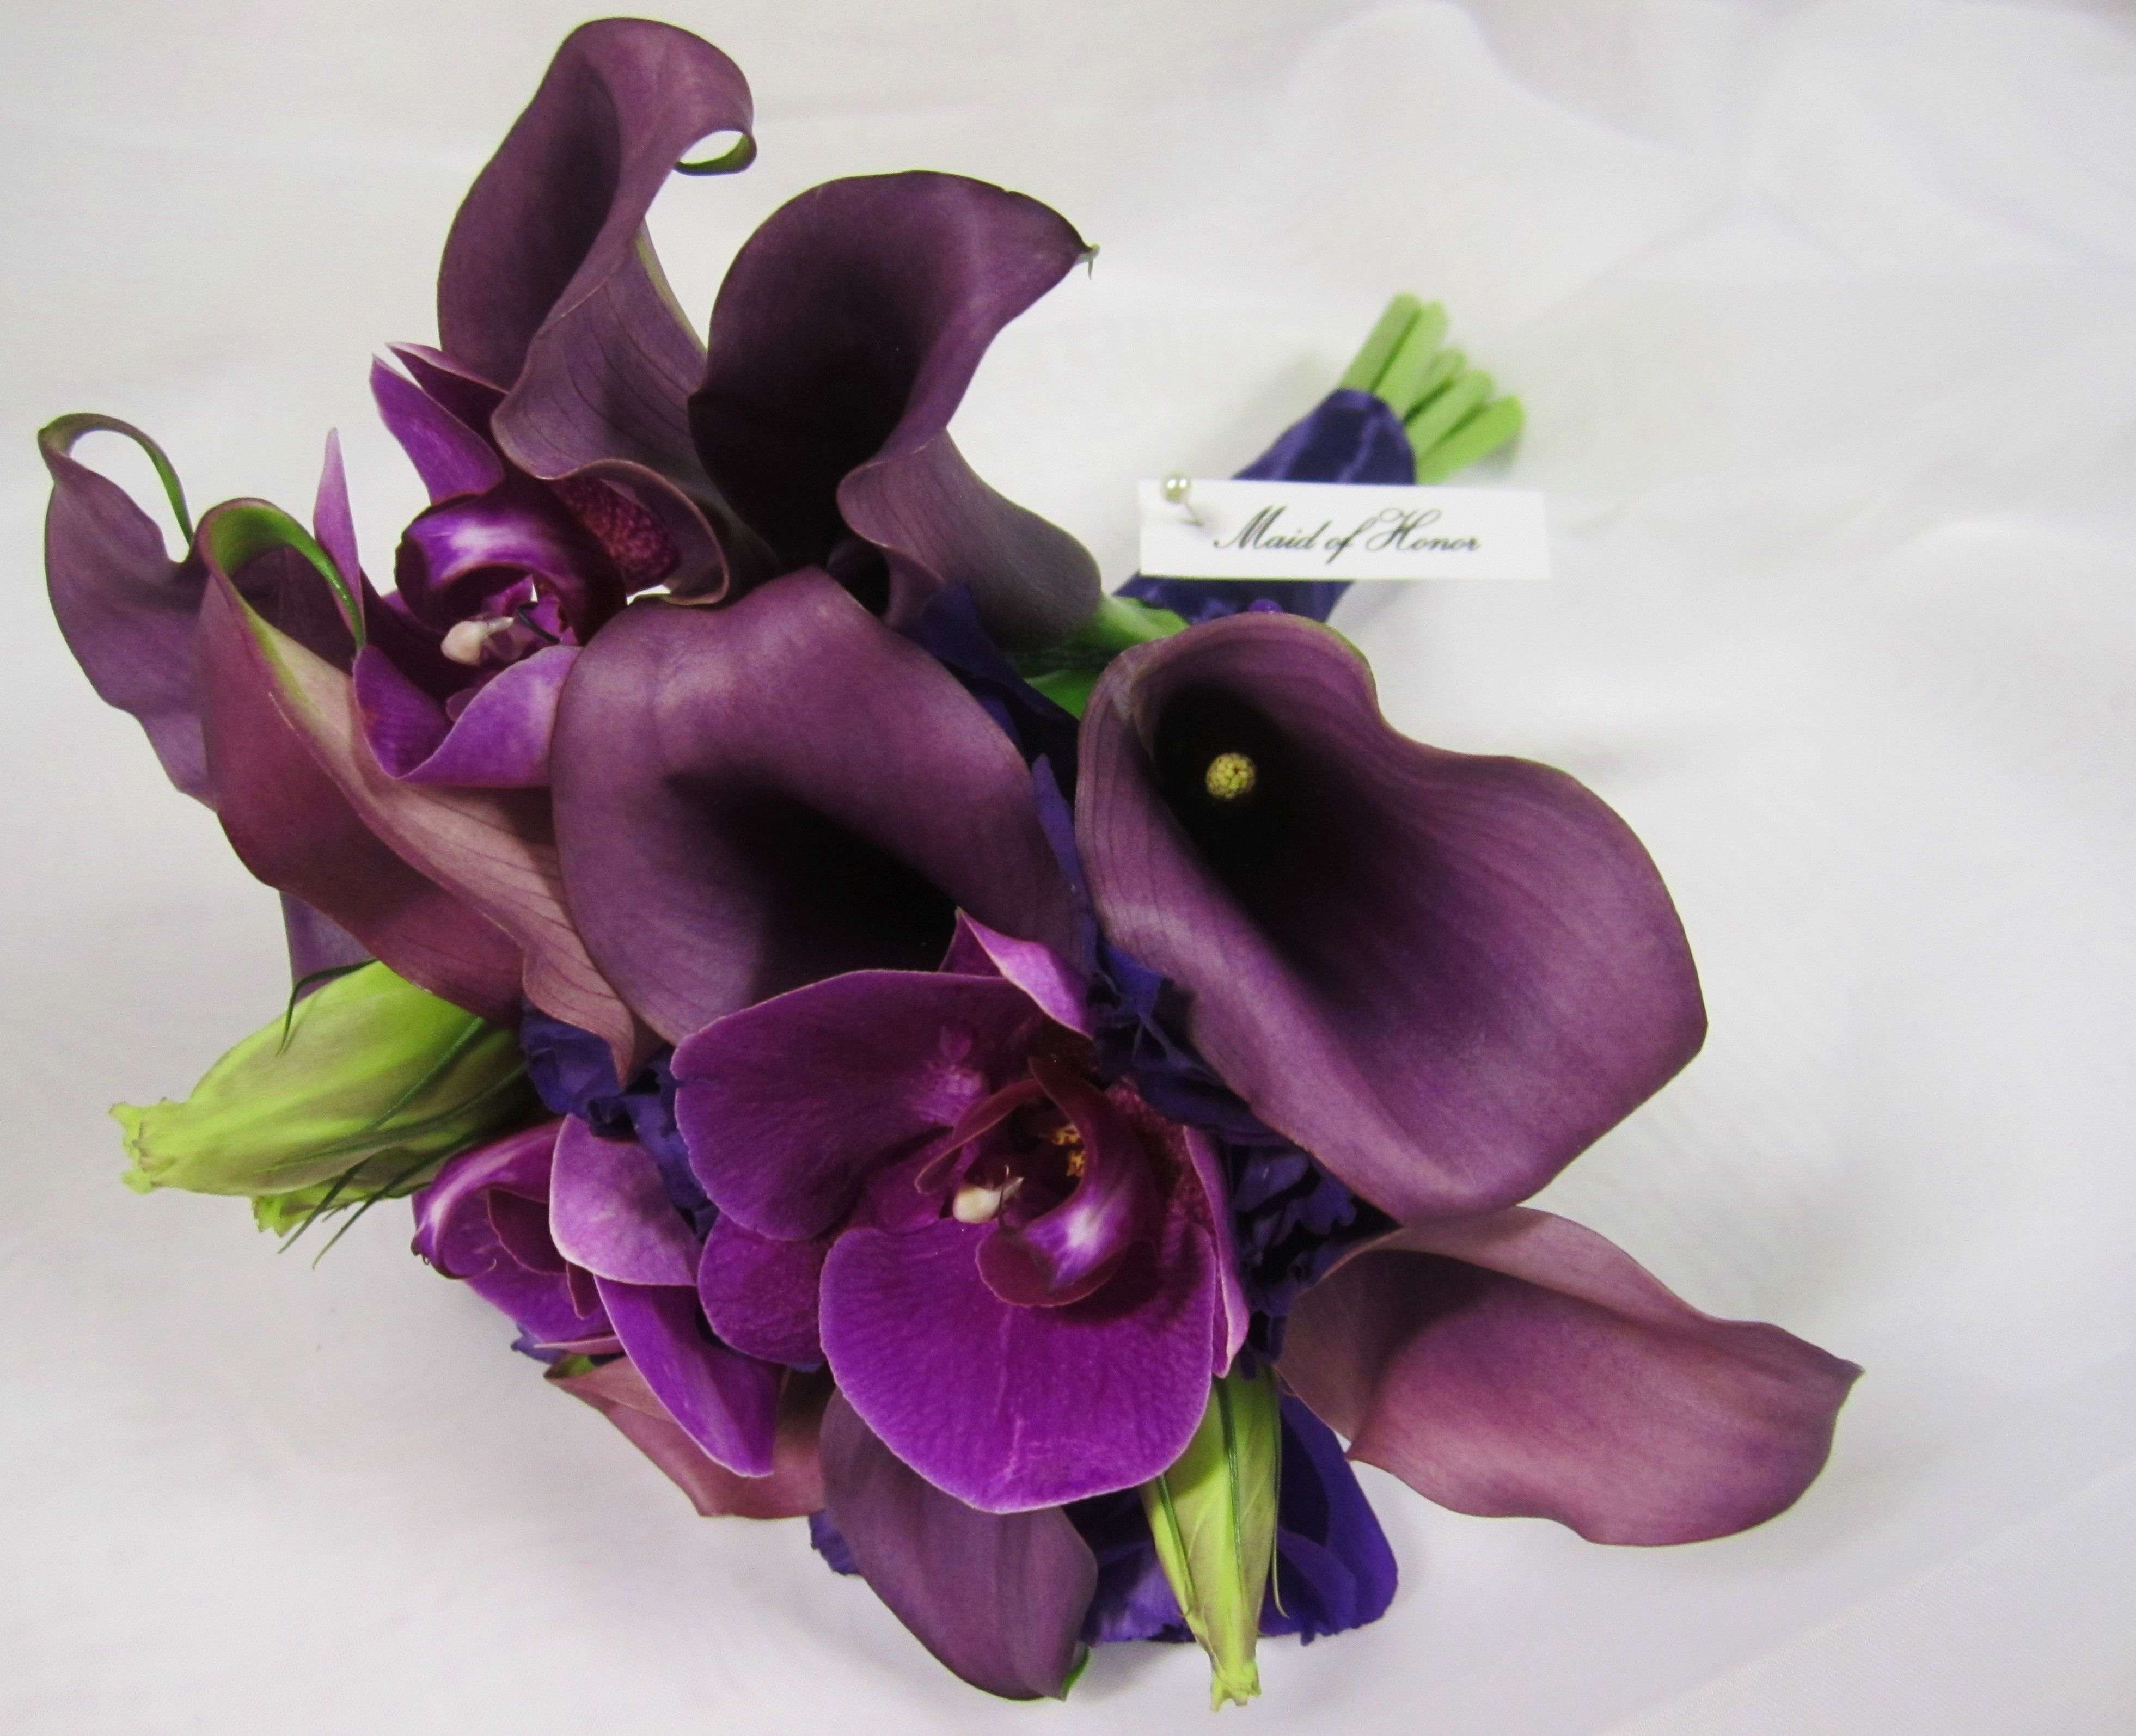 Maid of Honor bouquet of callas, lisianthus and phalaenopsis orchids; design by Davis Floral Creations